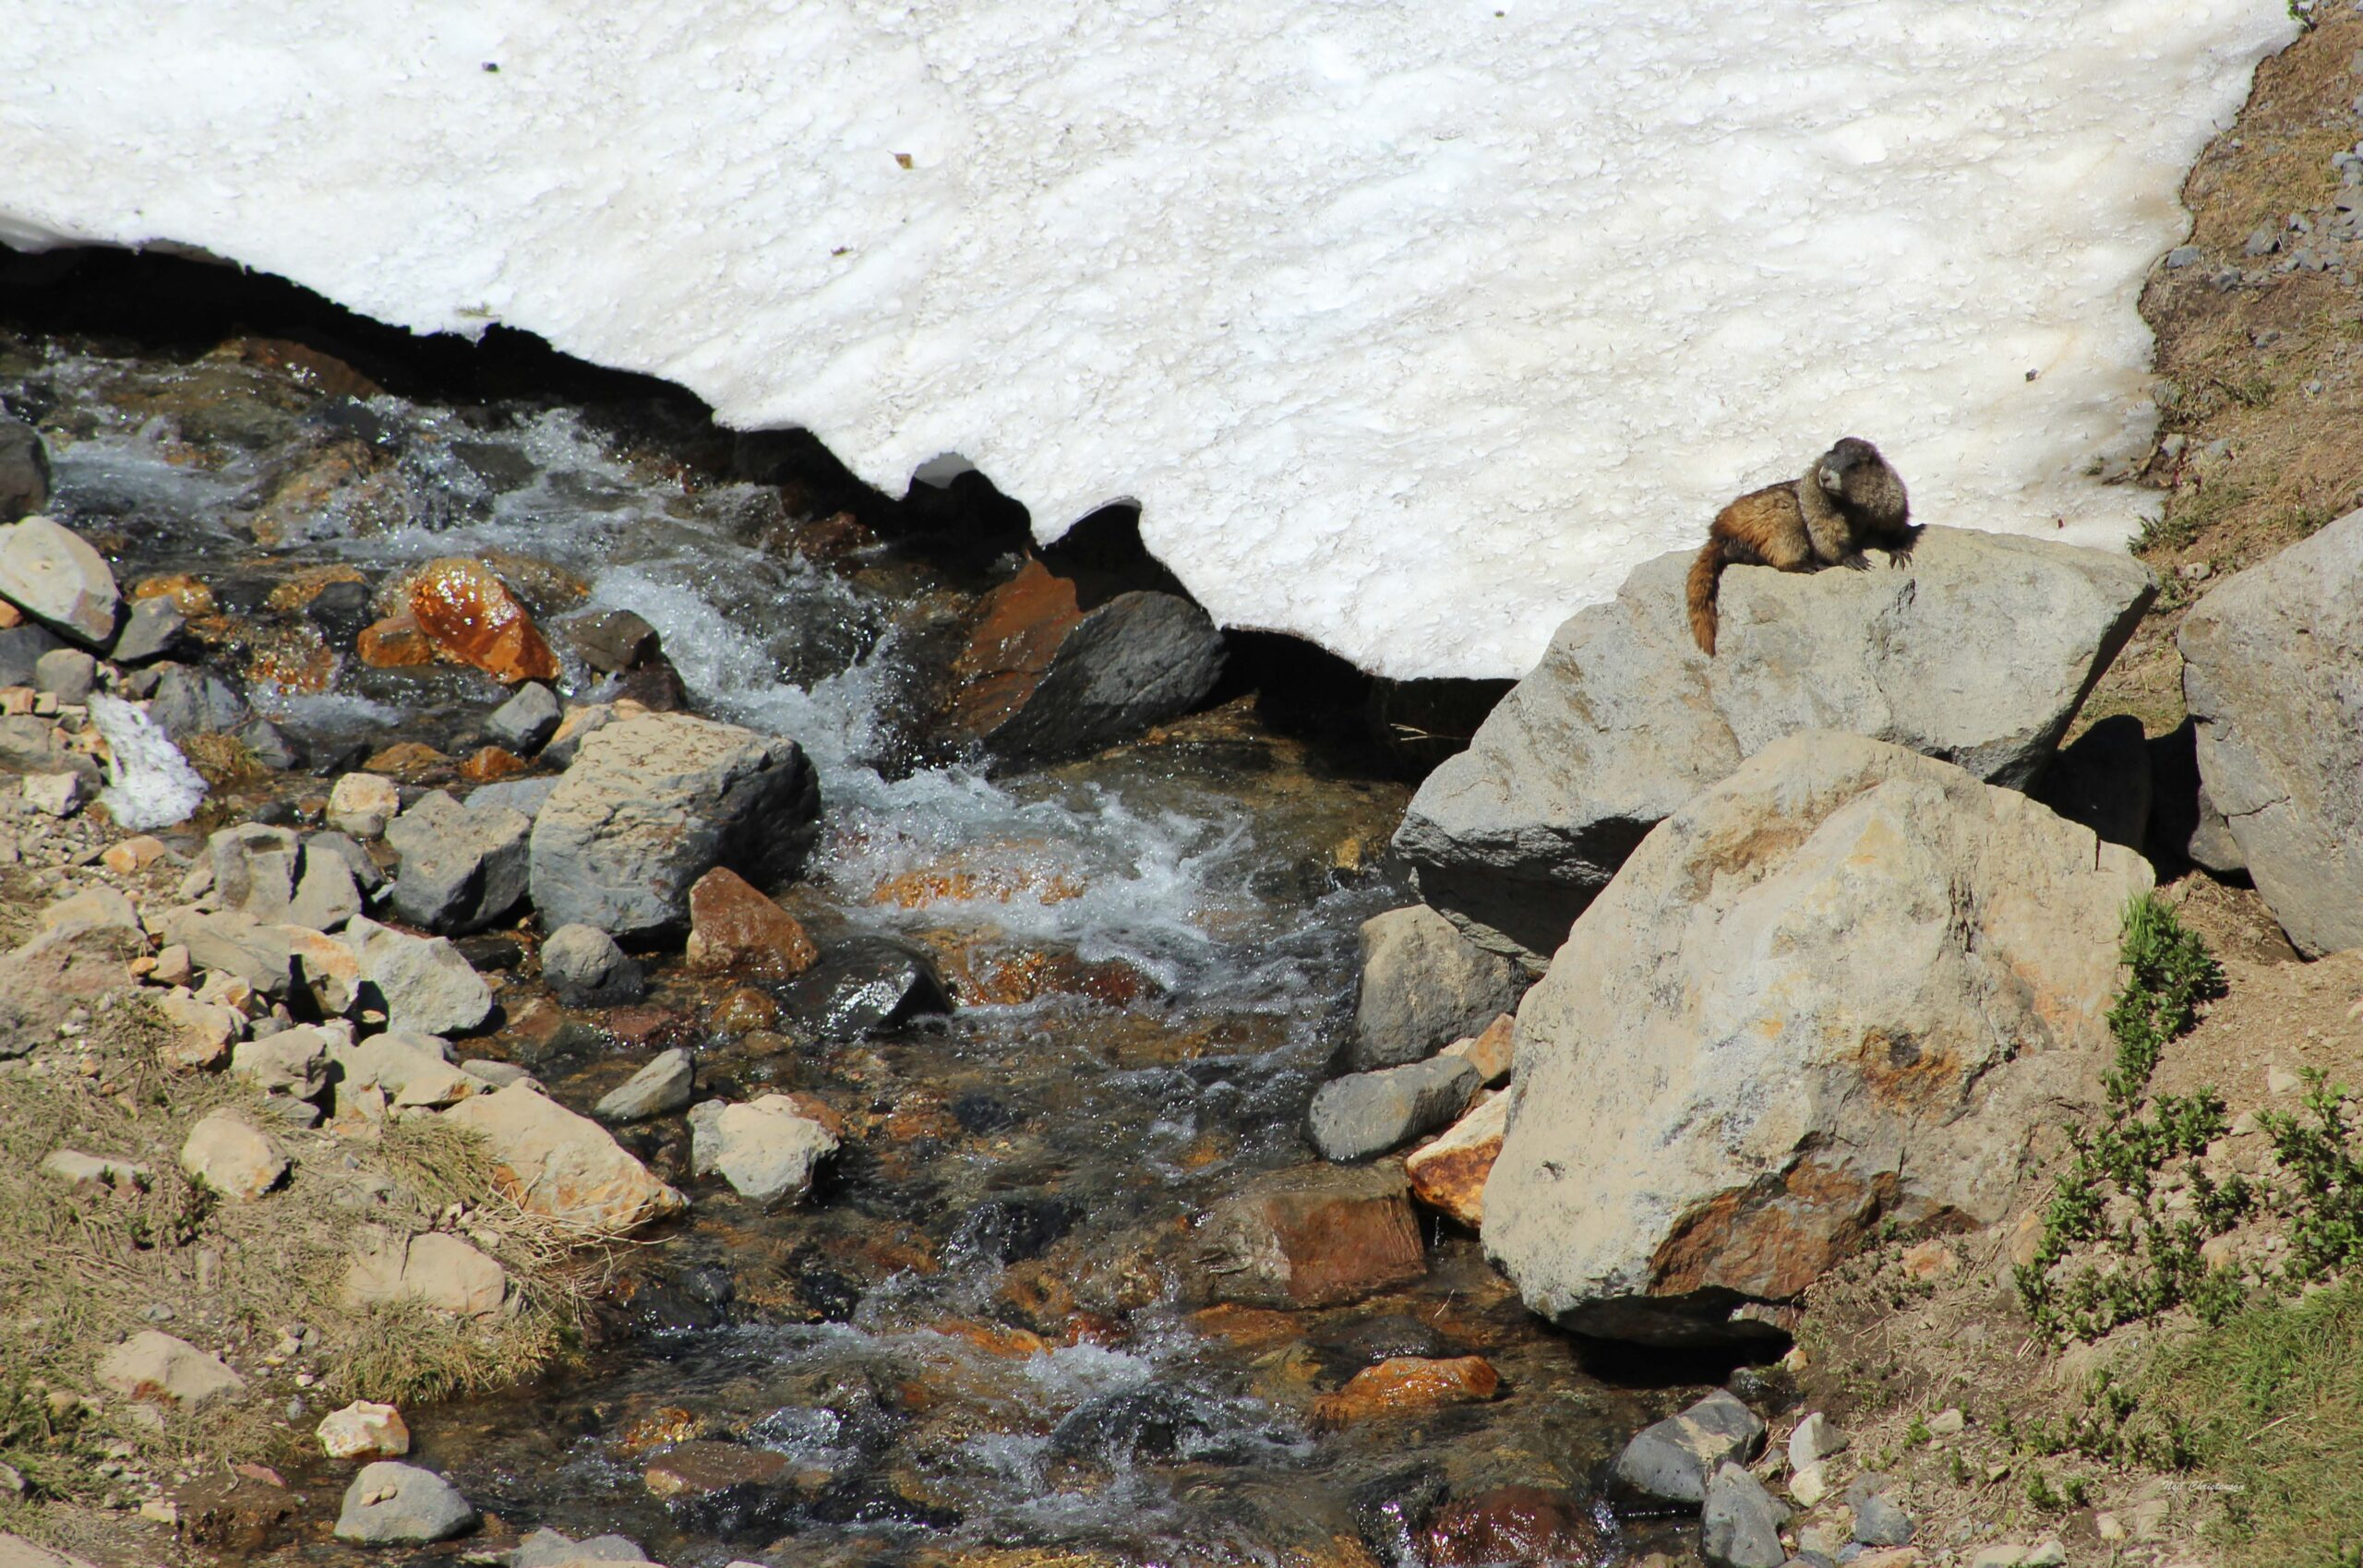 A marmot sitting on a rock besides a meltwater stream.